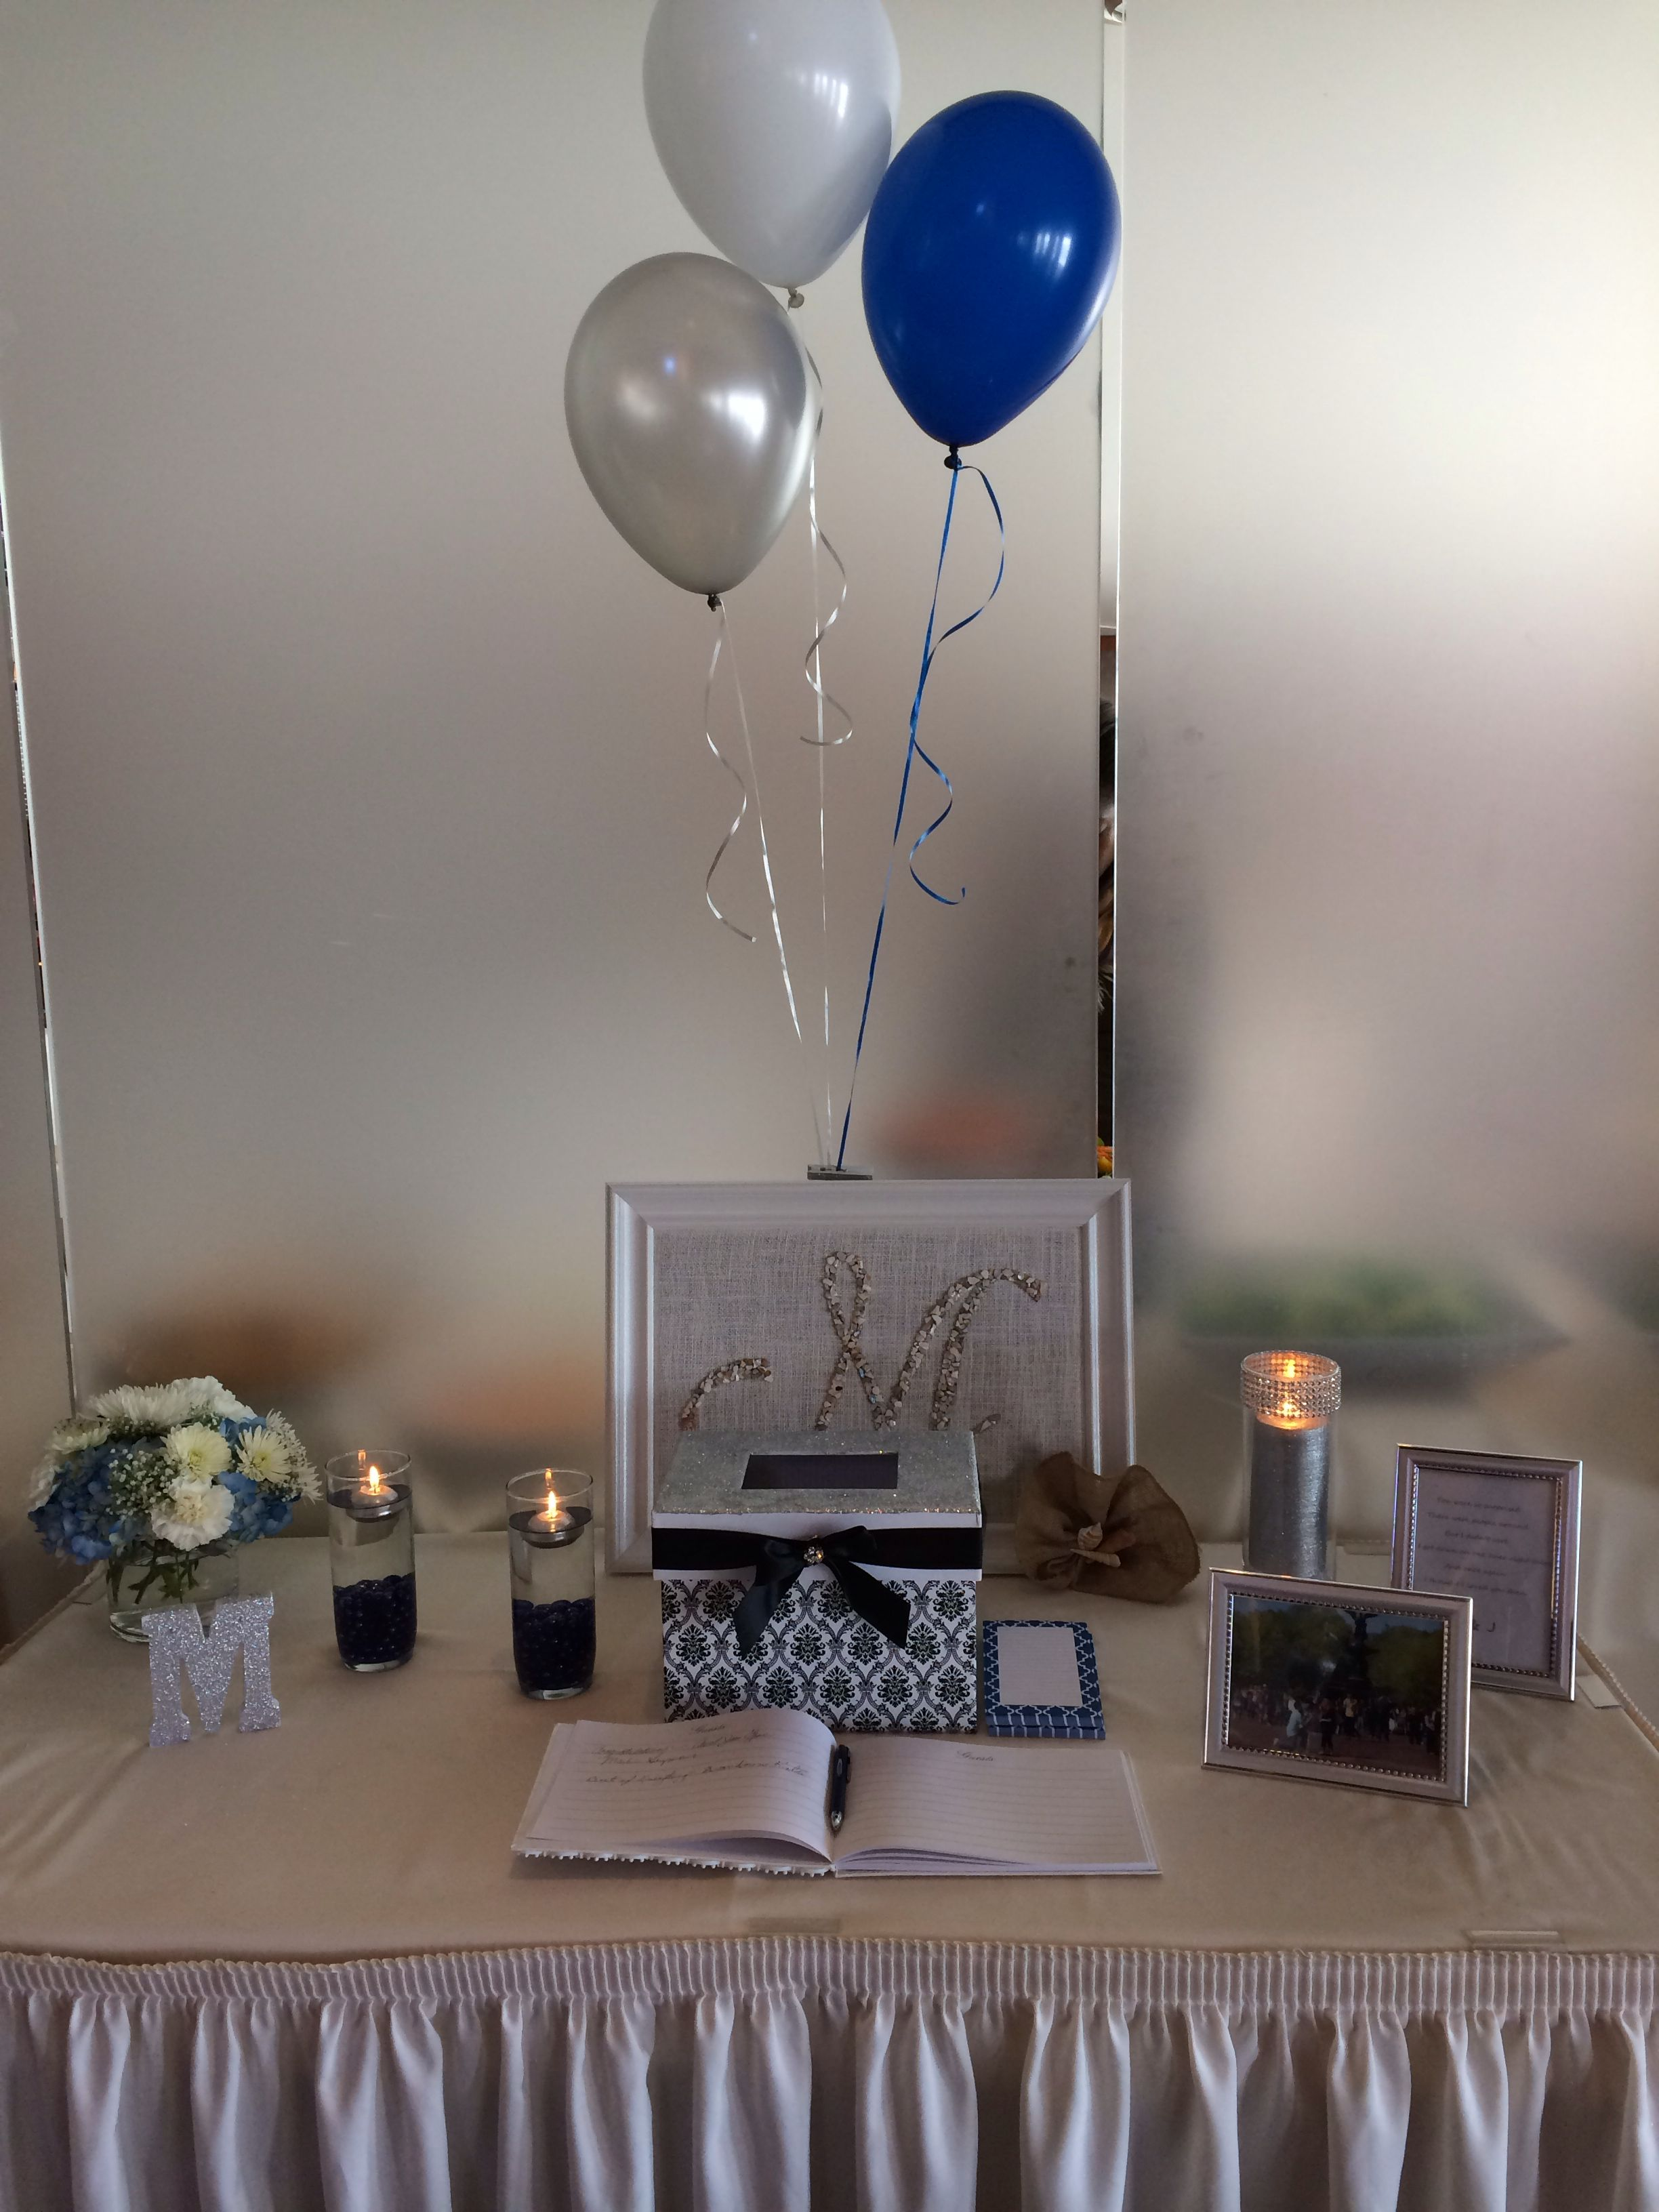 Bridal Shower blue, silver and white. Table with